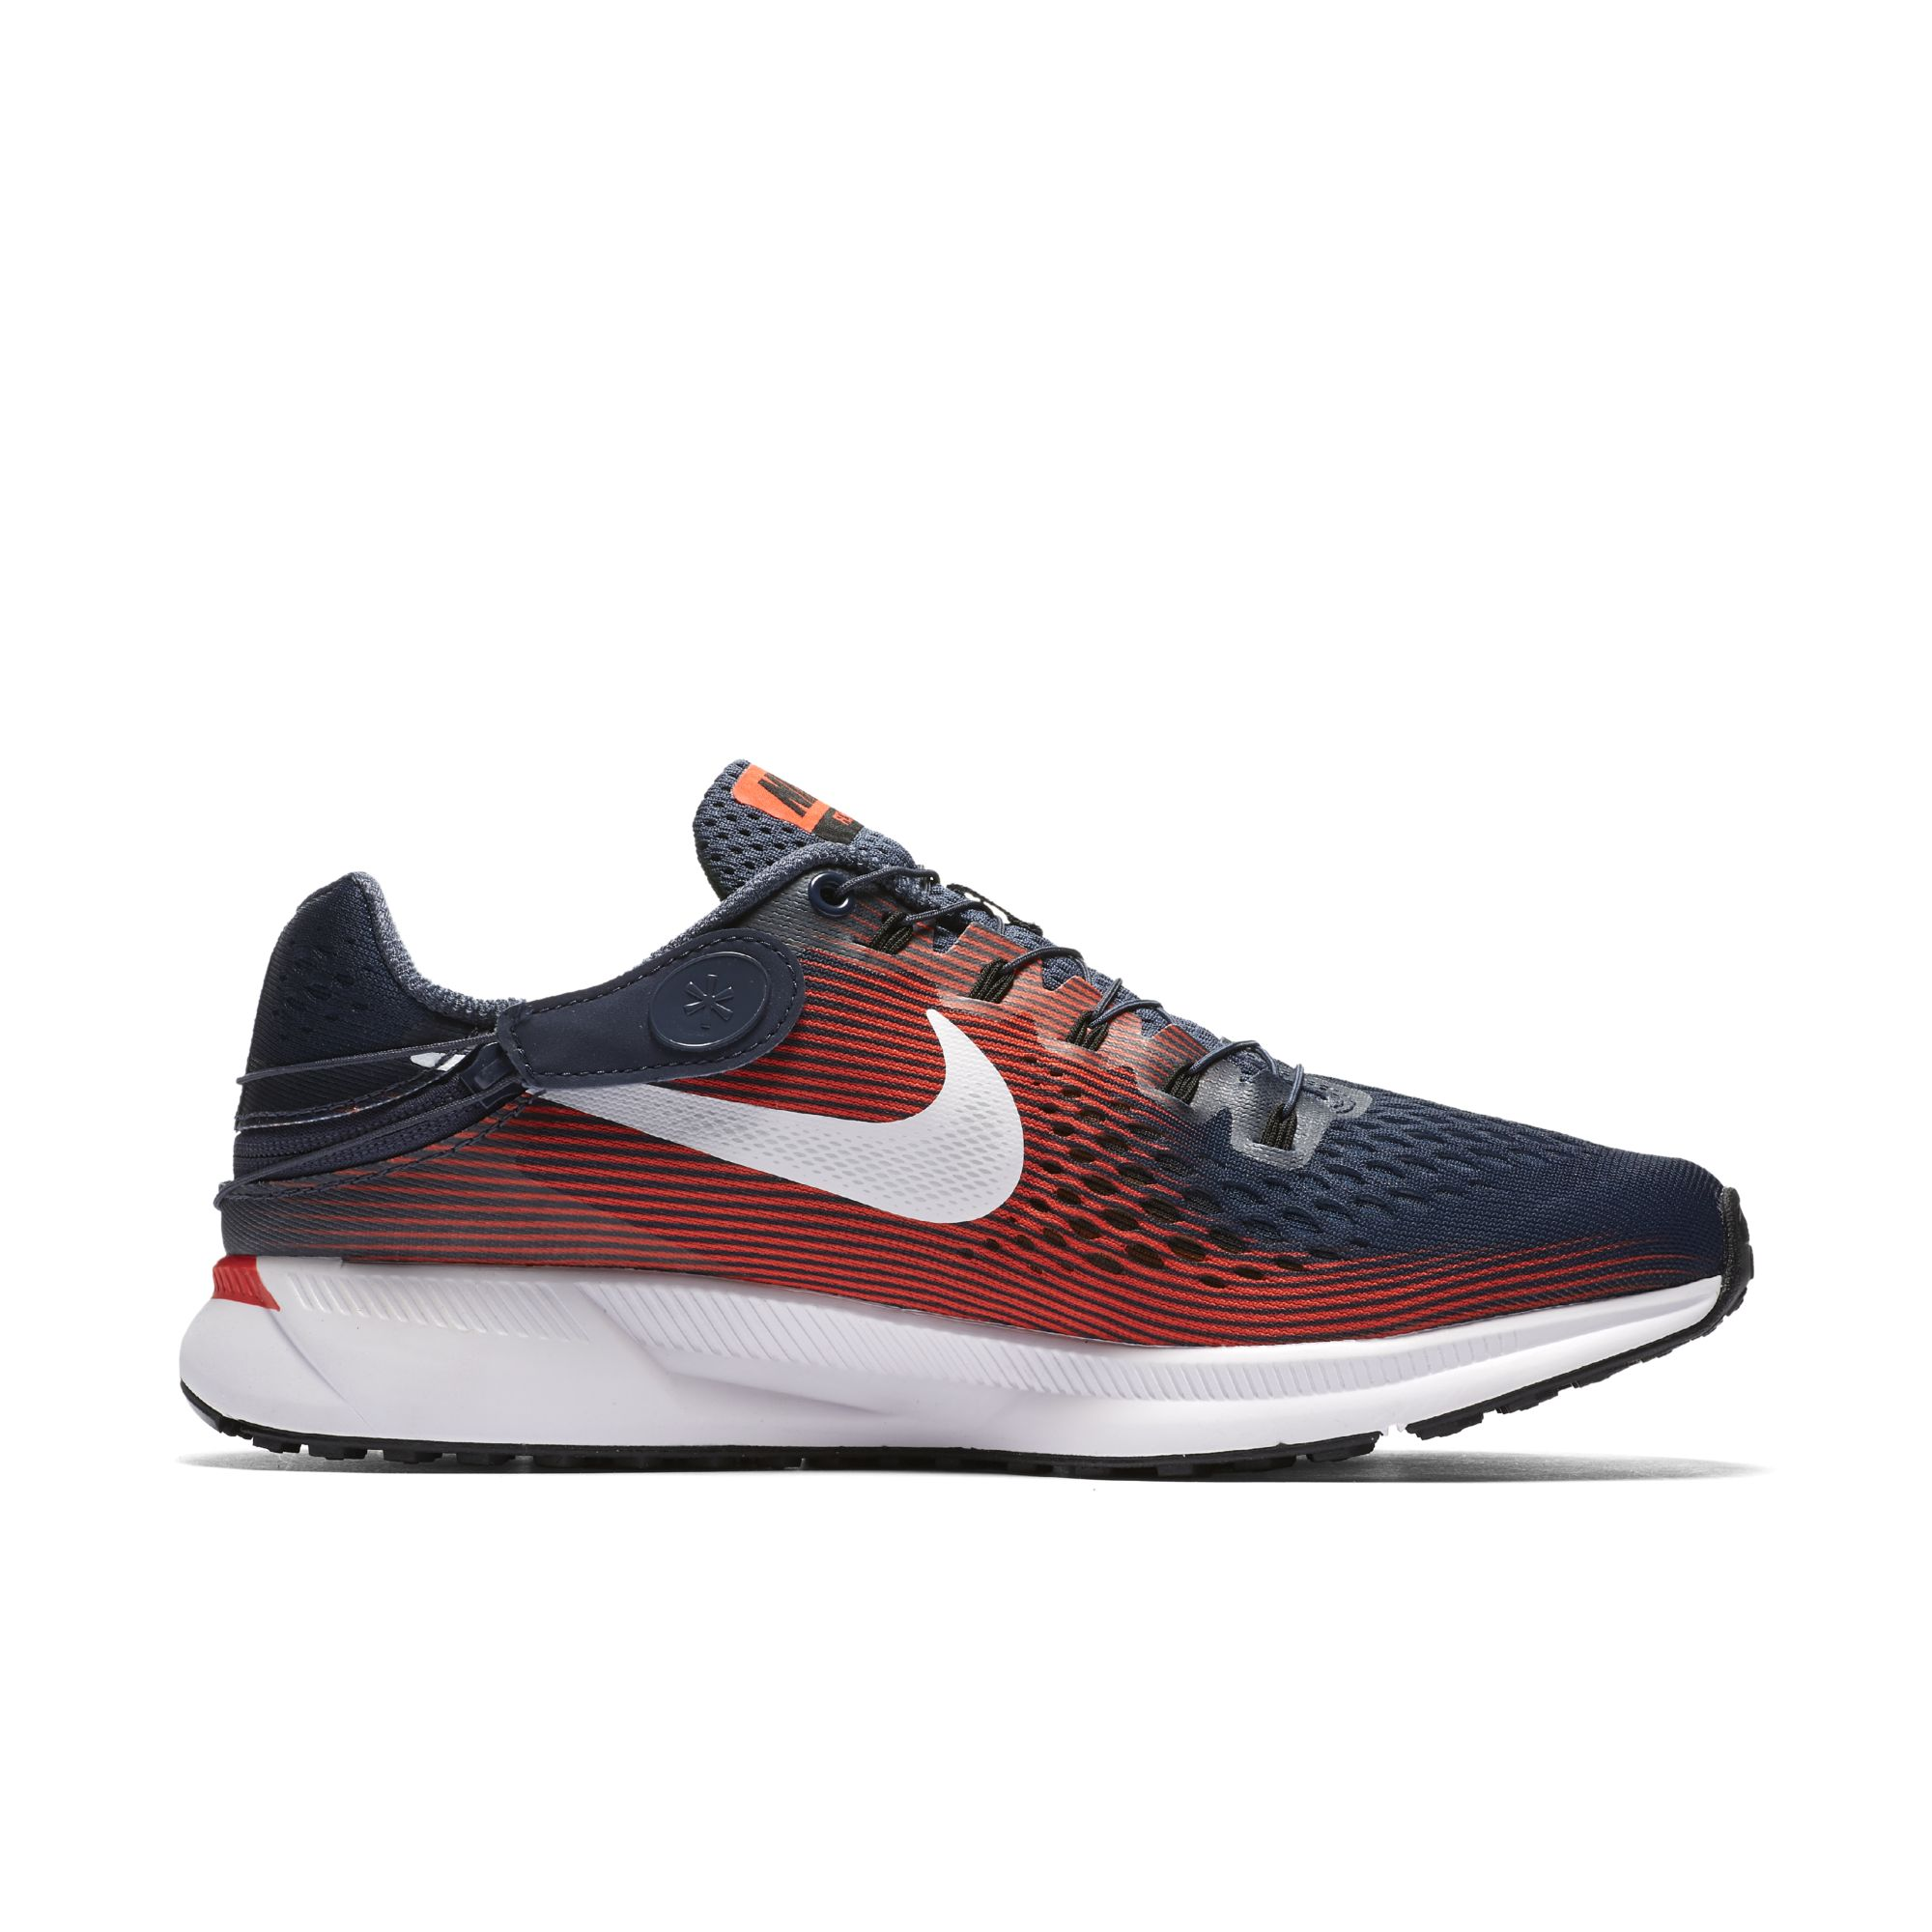 the nike air zoom pegasus 34 flyease has arrived weartesters. Black Bedroom Furniture Sets. Home Design Ideas